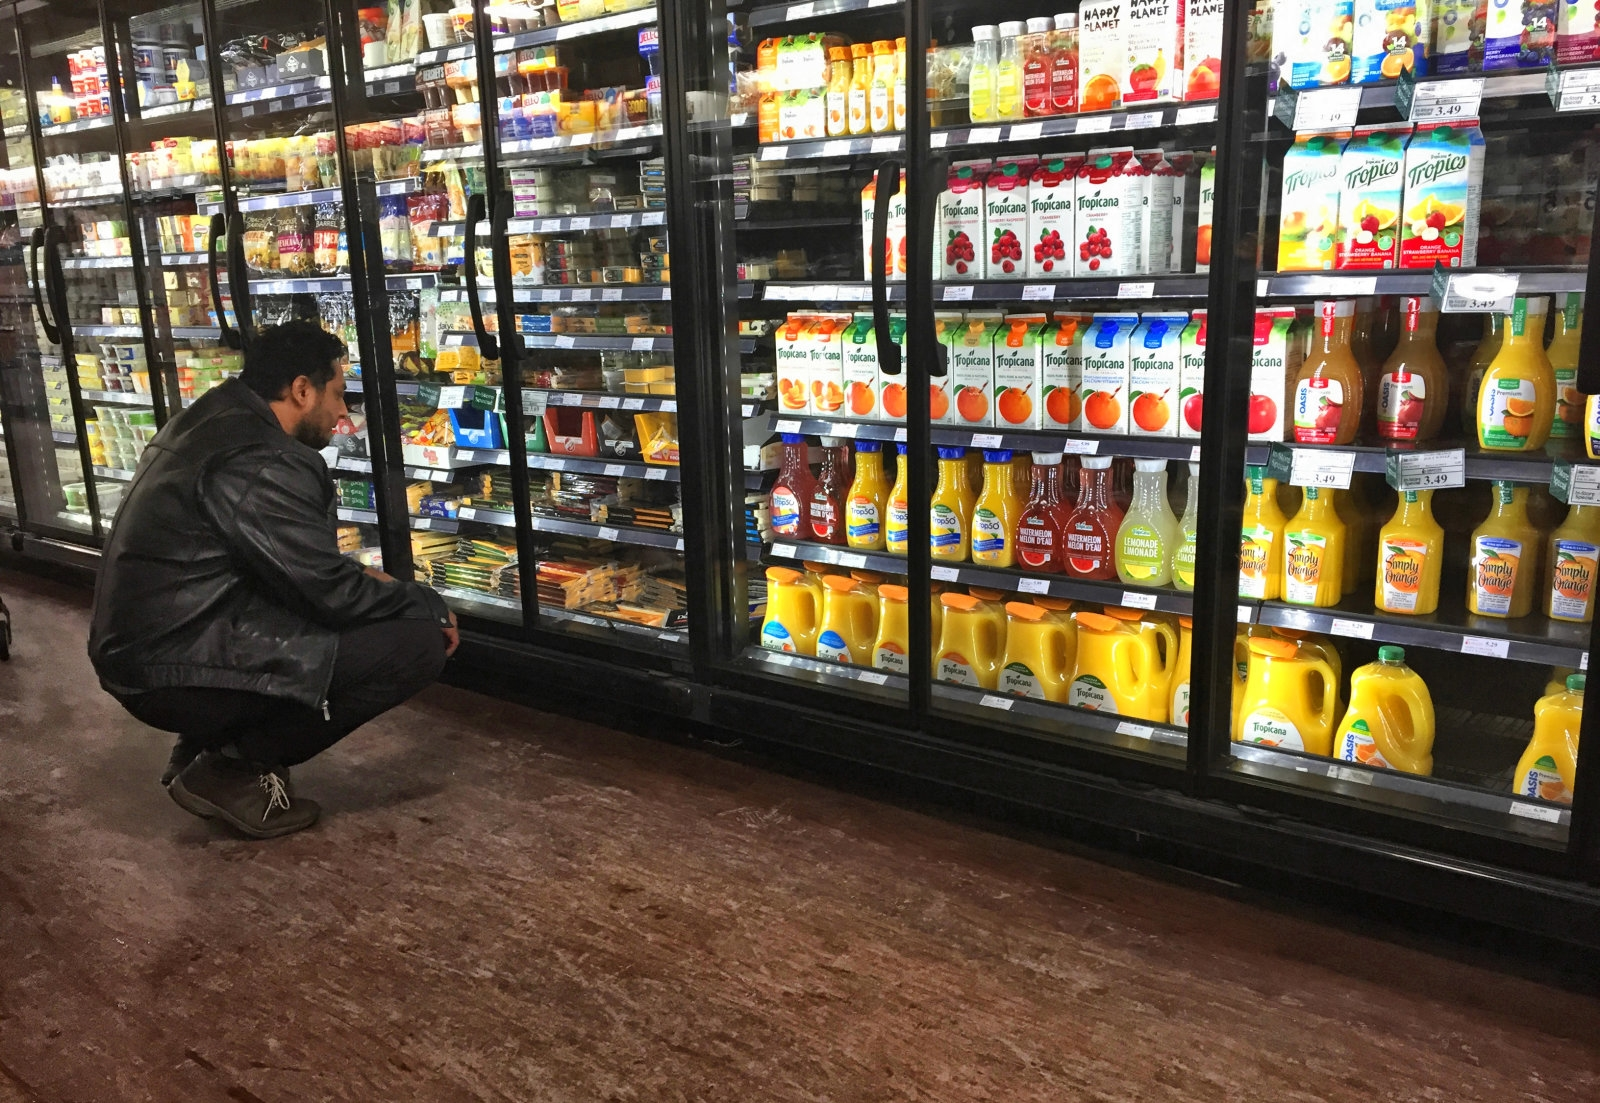 Networked freezers at grocery stores are vulnerable to hacking | DeviceDaily.com